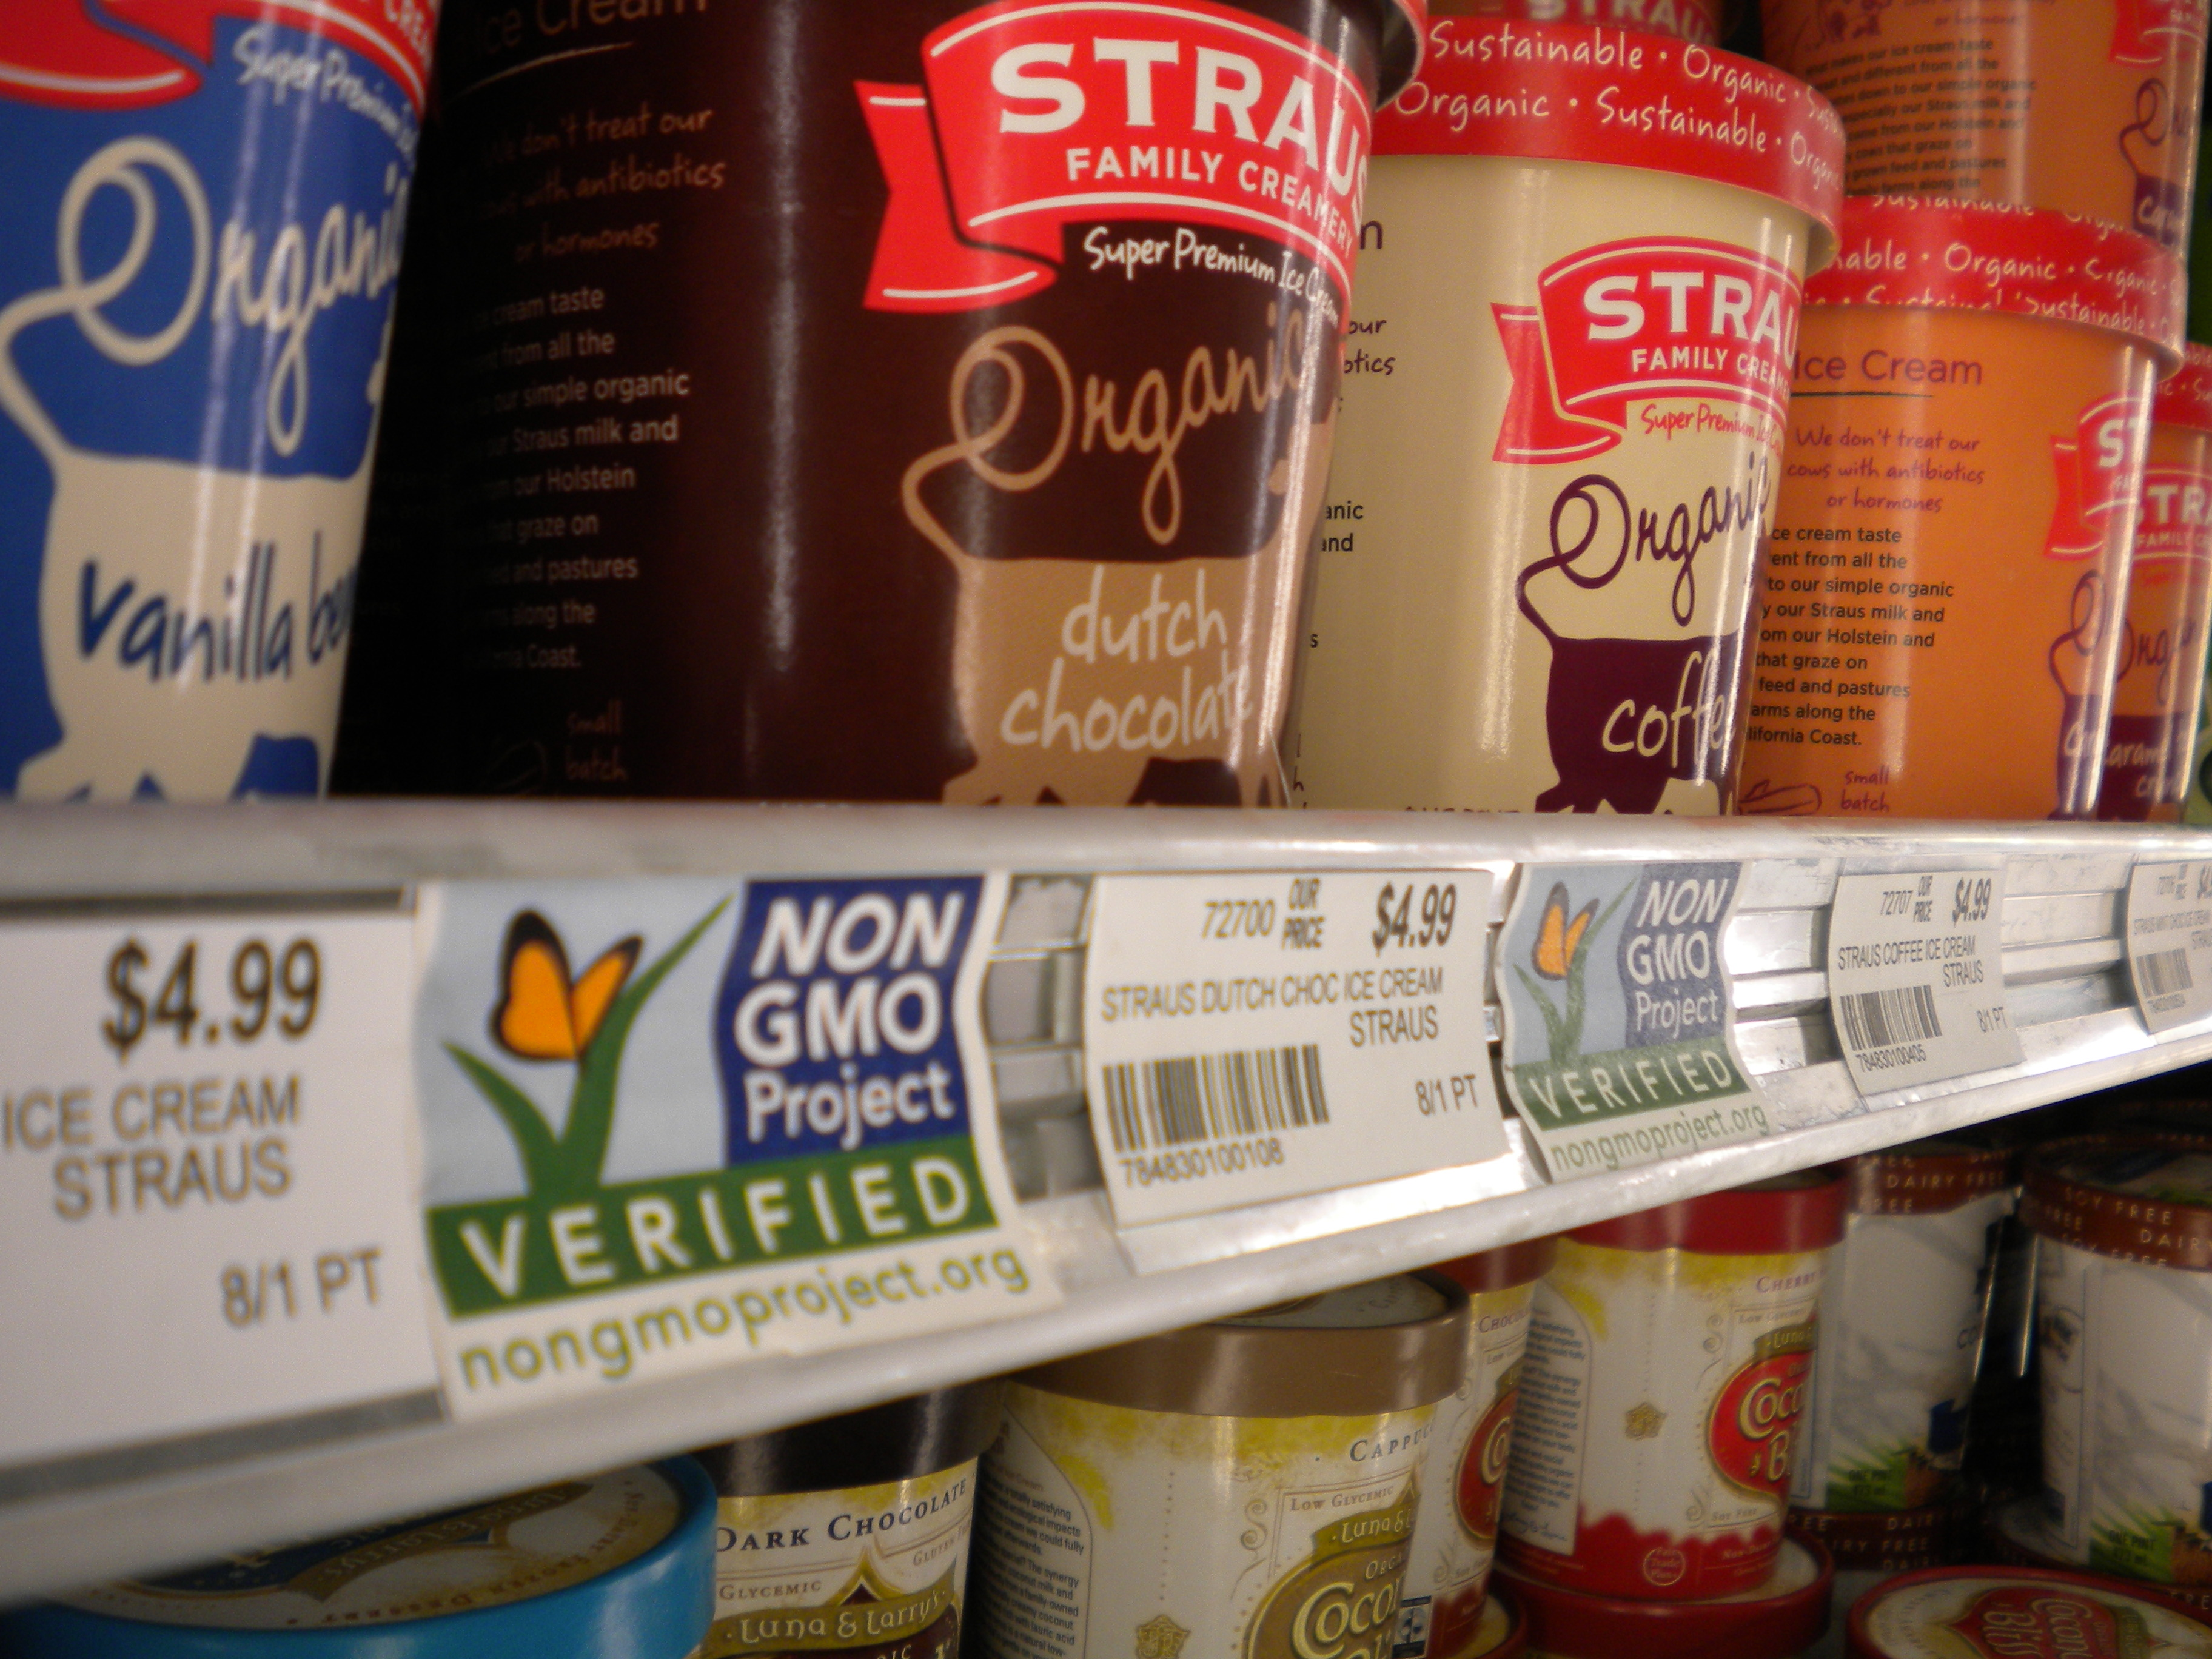 Rainbow Foods in downtown Juneau labels while products and do not contain genetically-modified organisms. House Bill 92 aims to require all foods sold in Alaska to have such labels. (Photo by Kevin Reagan / KTOO)